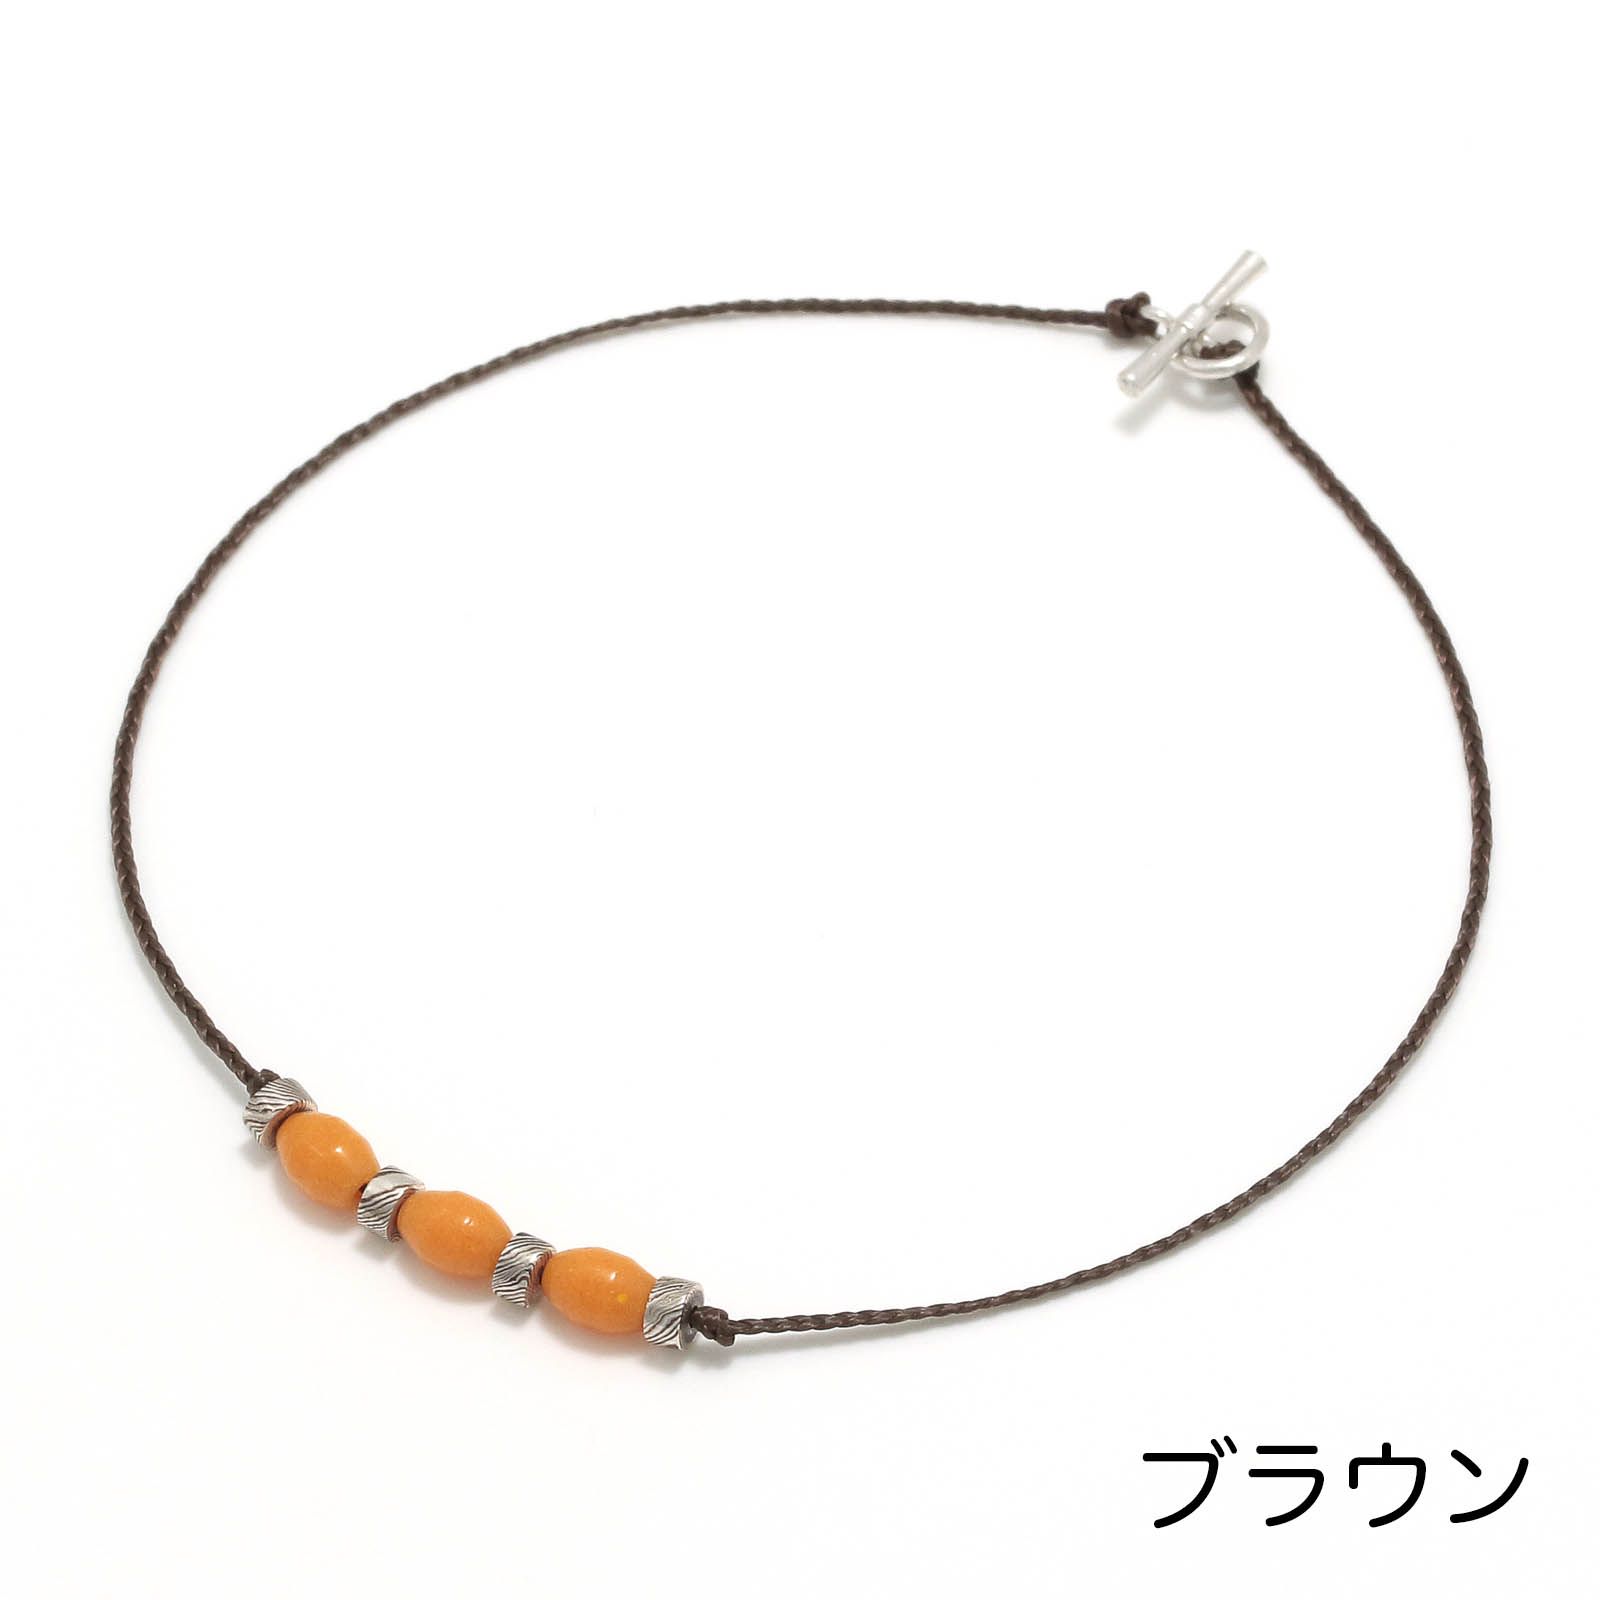 Collaboration One Mile Jewelry MOKUME Beads Anklet